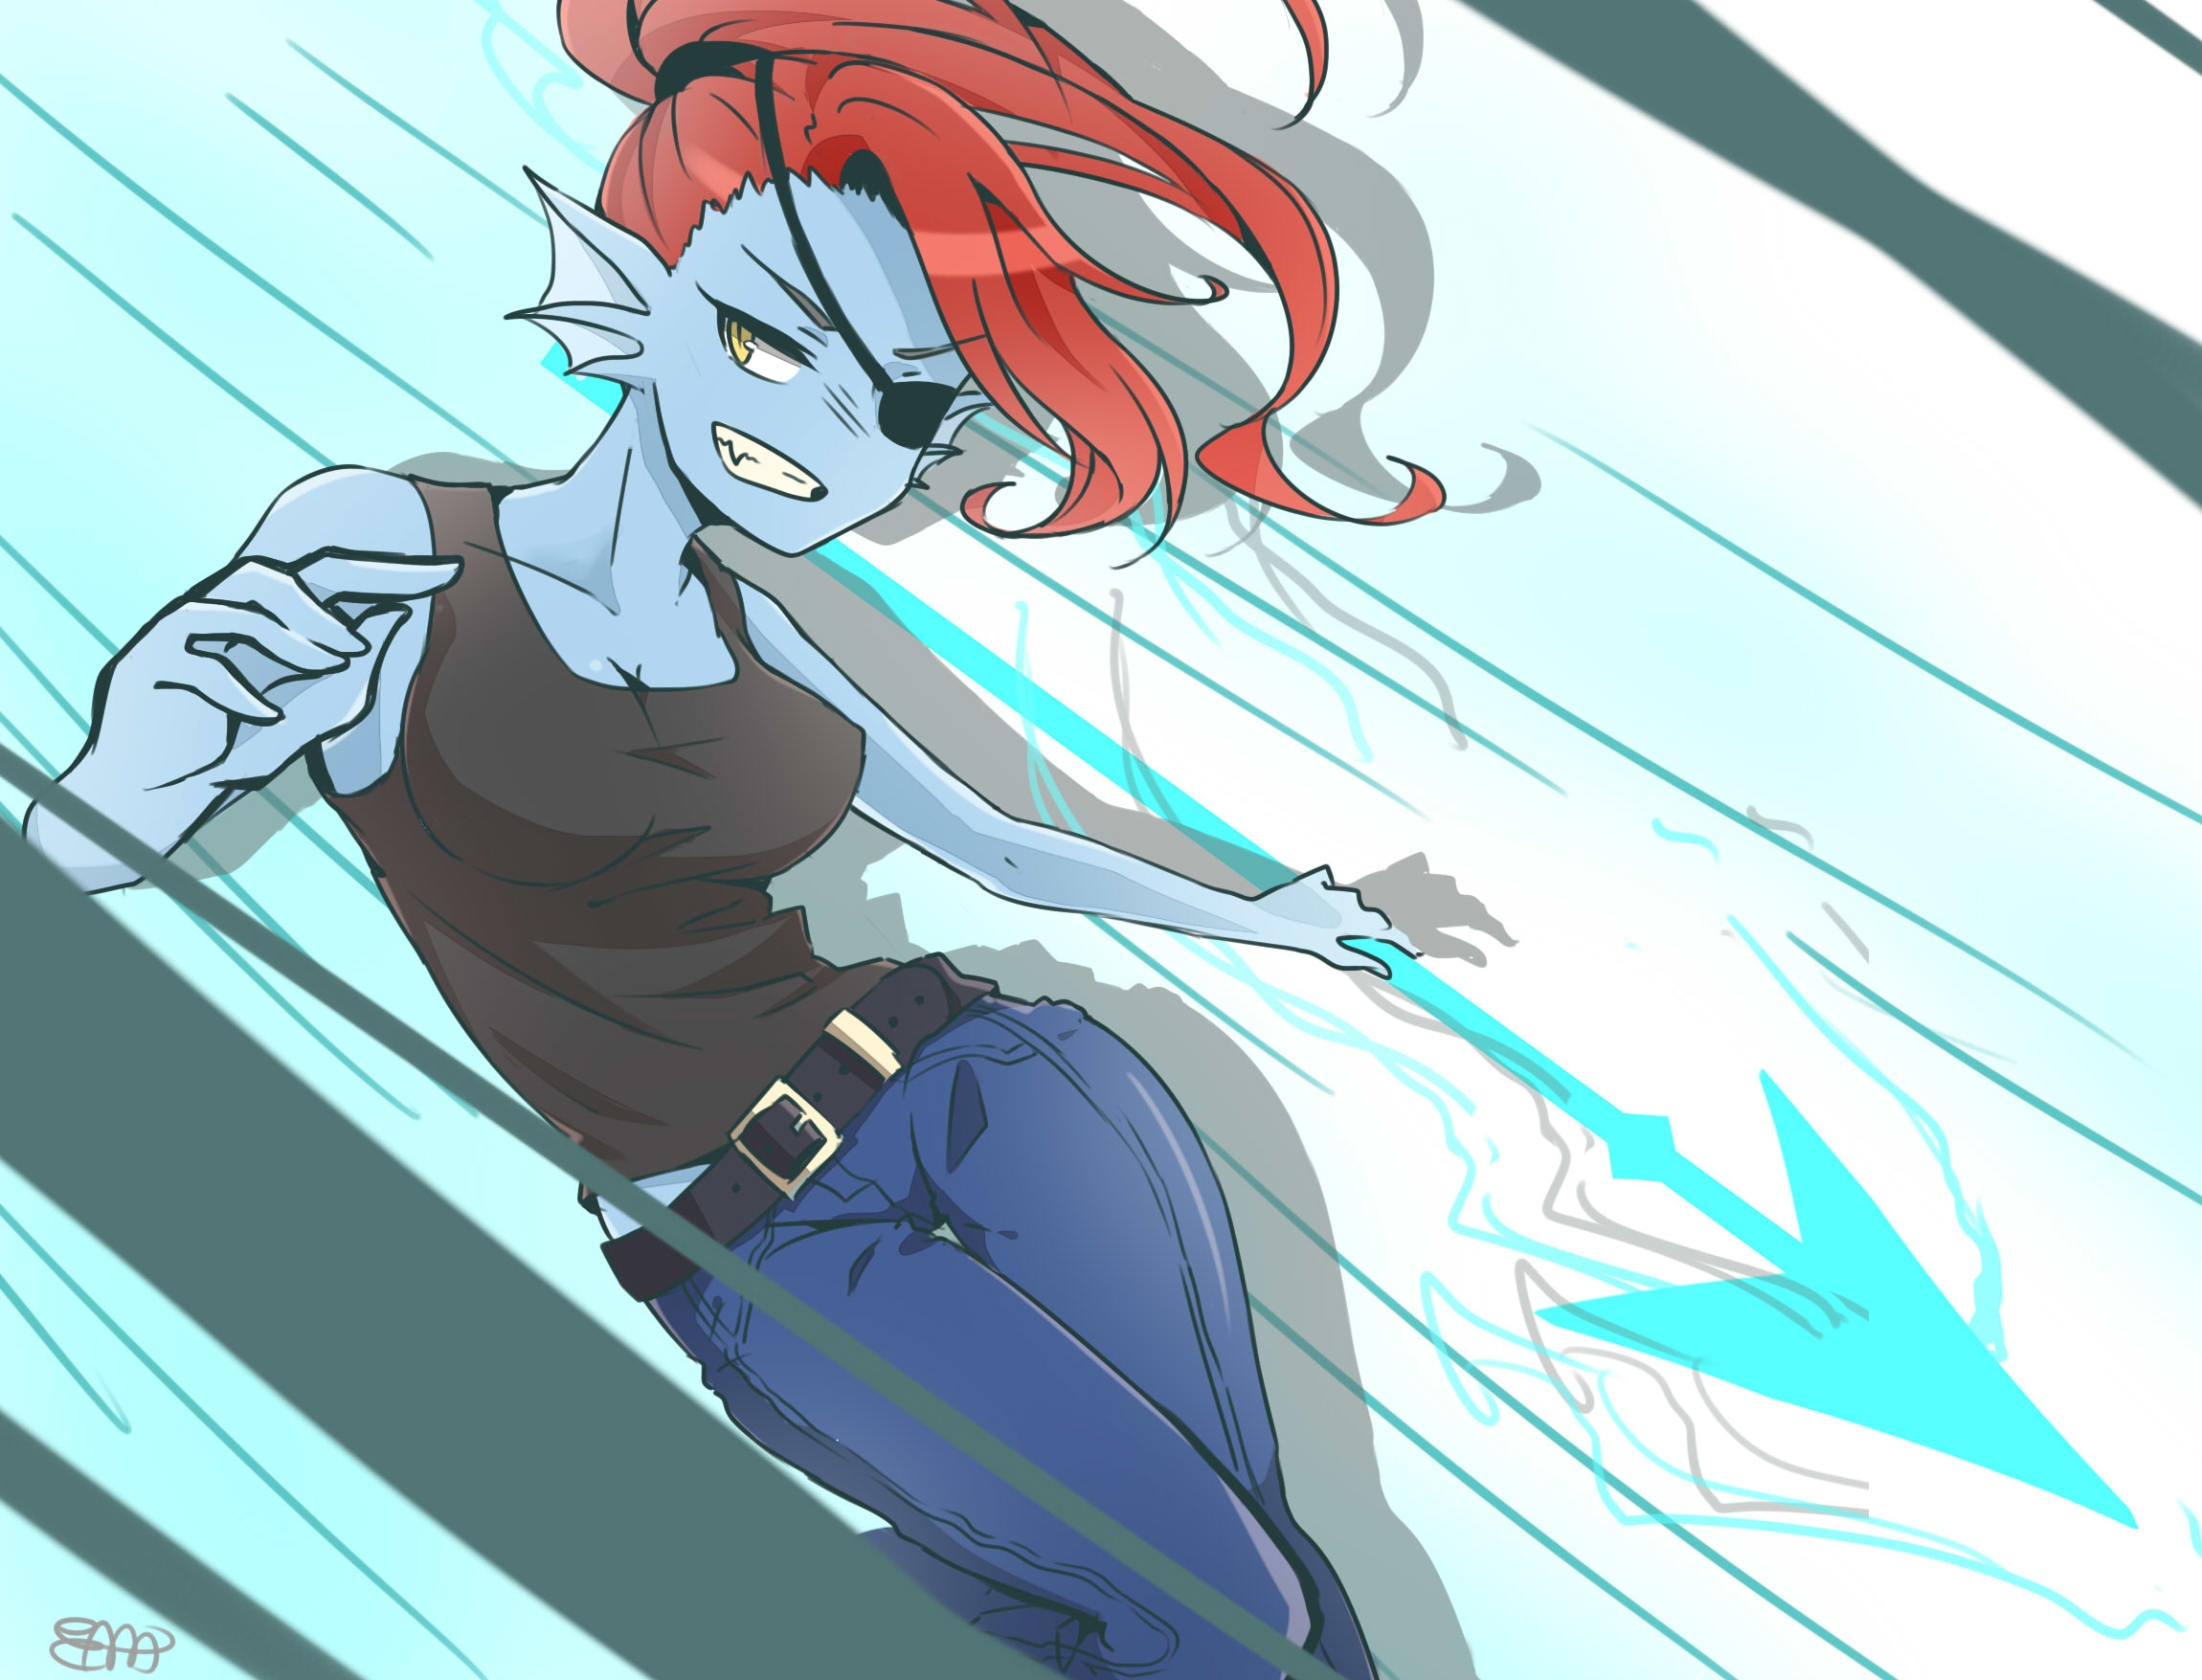 undertale undyne konachancom   Konachancom Anime Wallpapers 2300x1755